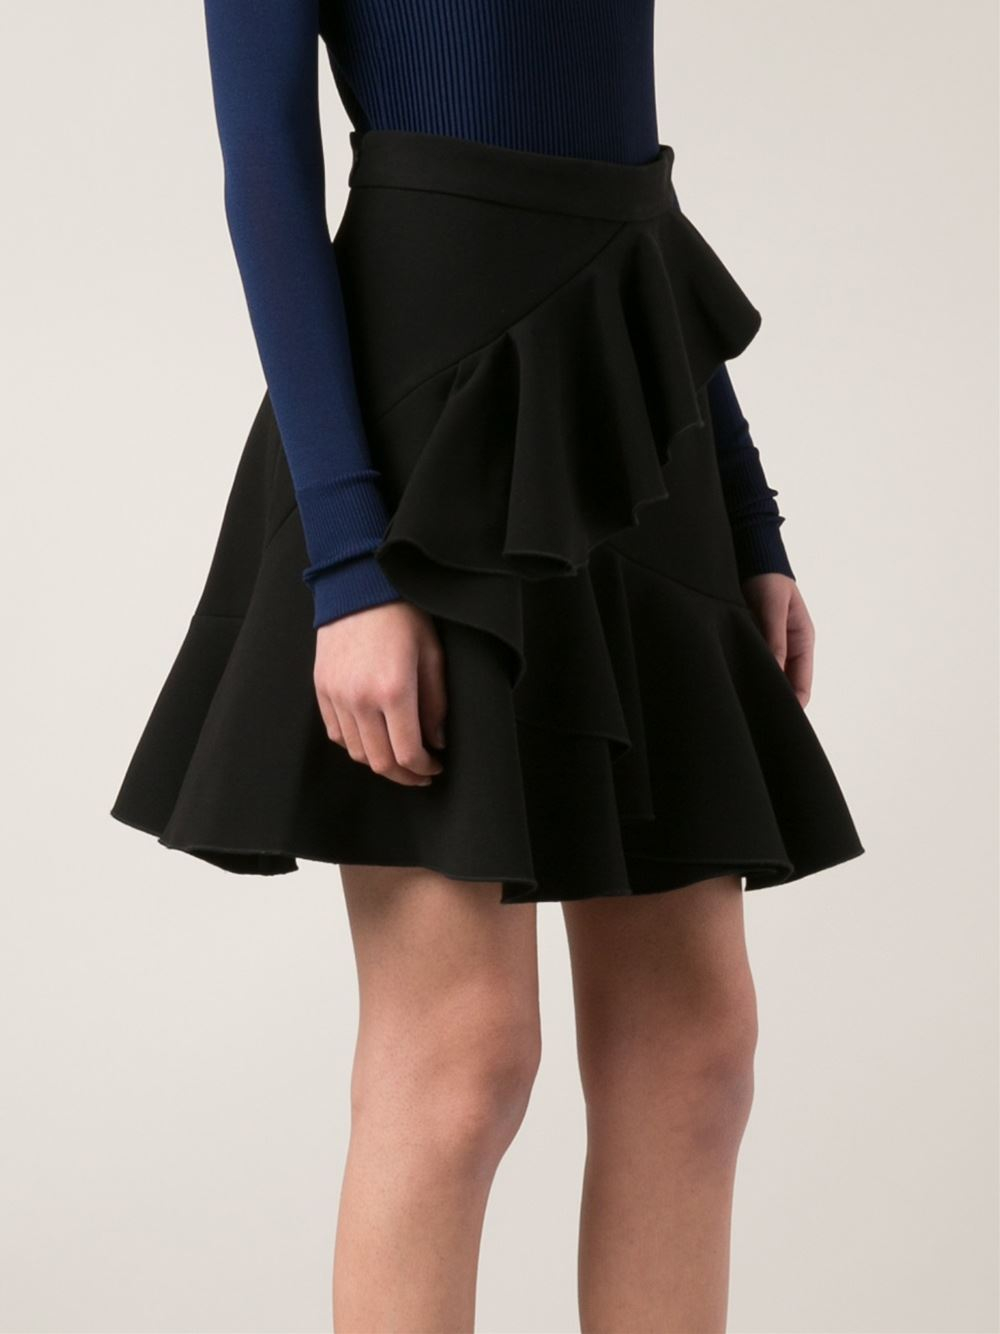 Available In Red And Black High Rise Mini Skirt Ruffle Flounce Detail Full Stretch Elastic Waistband 16